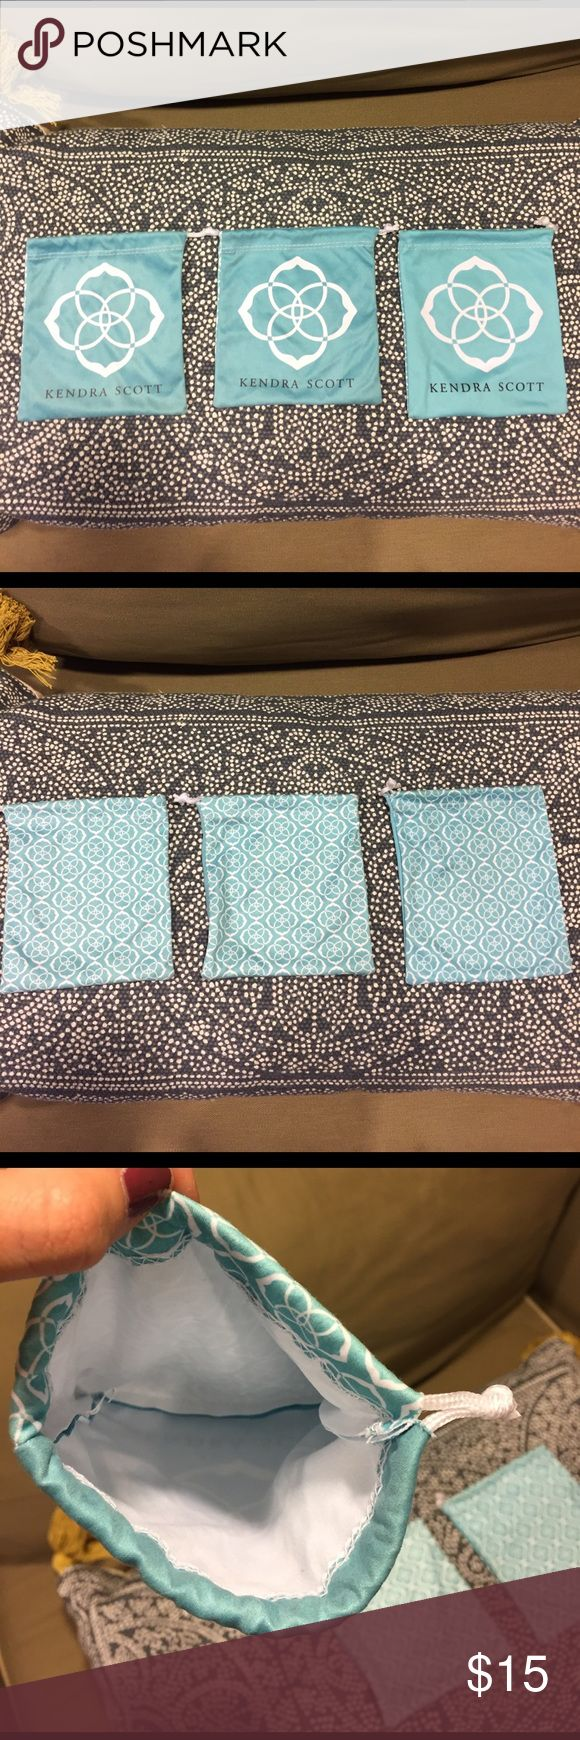 KENDRA SCOTT Jewelry pouches (set of 3) I have three Kendra Scott Jewelry pouches. All in excellent condition and perfect for transporting or storing Jewelry. I can also sell them individually, just comment and I will create a separate listing! Kendra Scott Jewelry